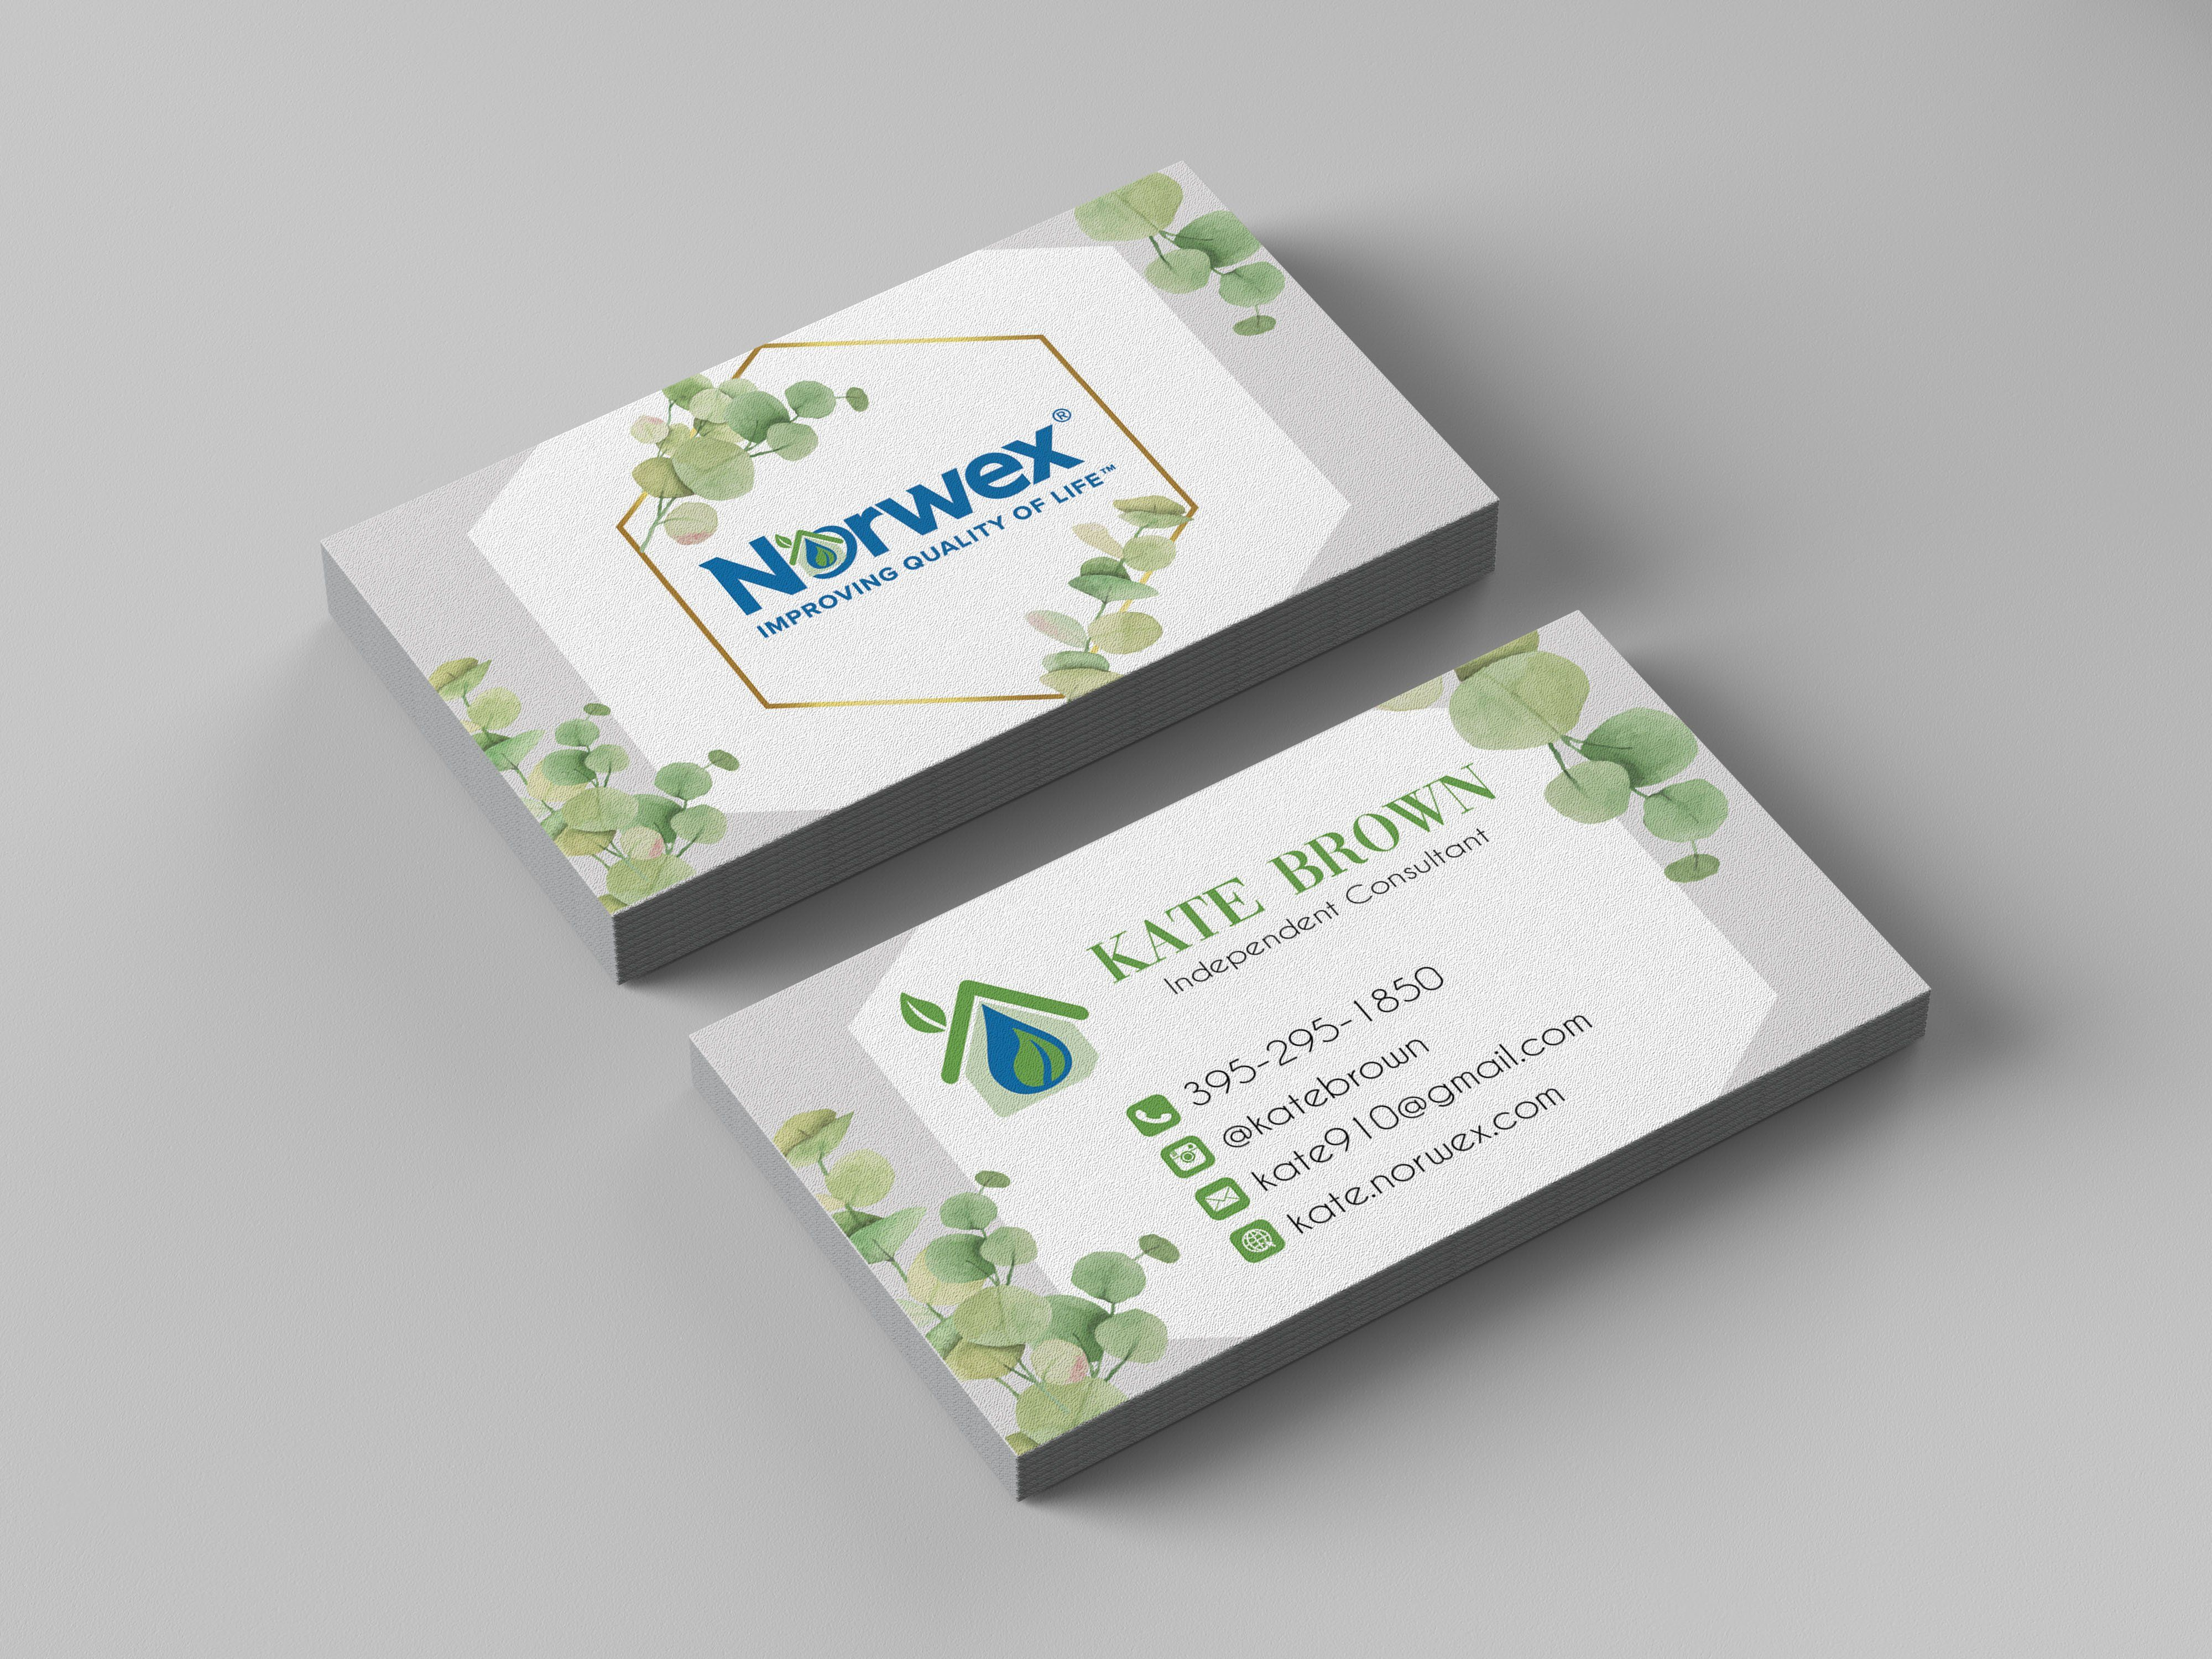 Norwex Business Cards Personalized Norwex Template Nw05 Cleaning Business Cards Norwex Arbonne Business Cards